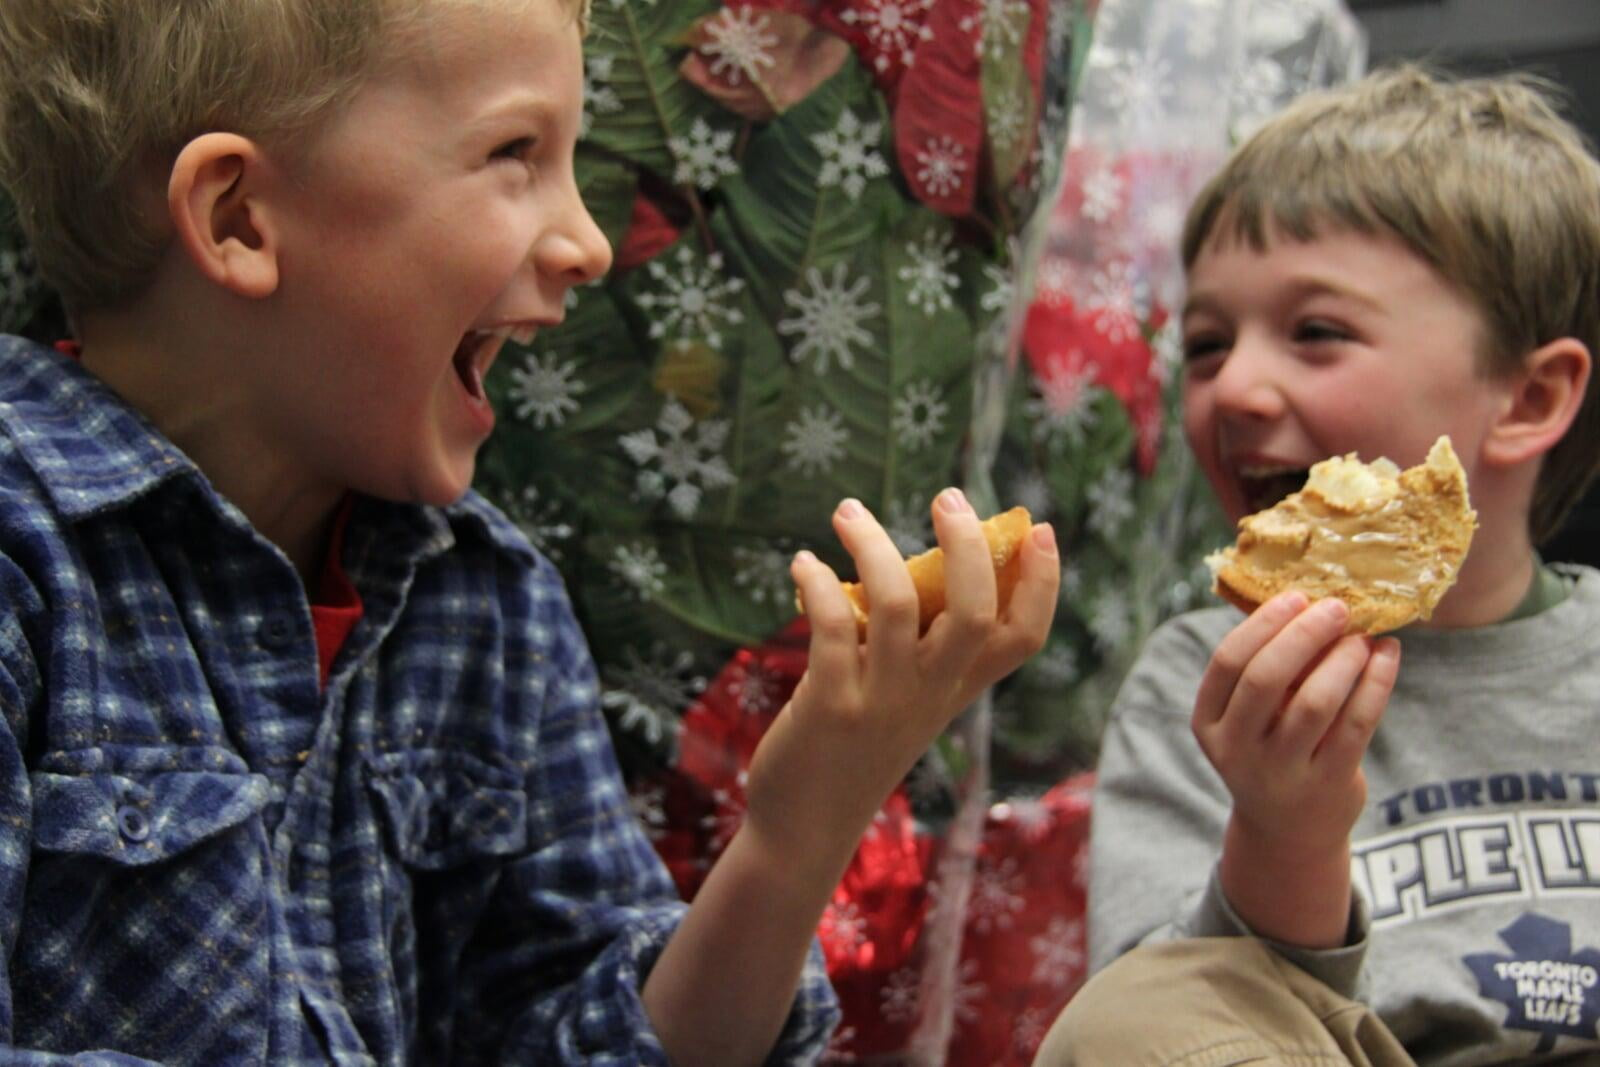 Two boys sitting laughing eating bagels in front of red packaged poinsettias.